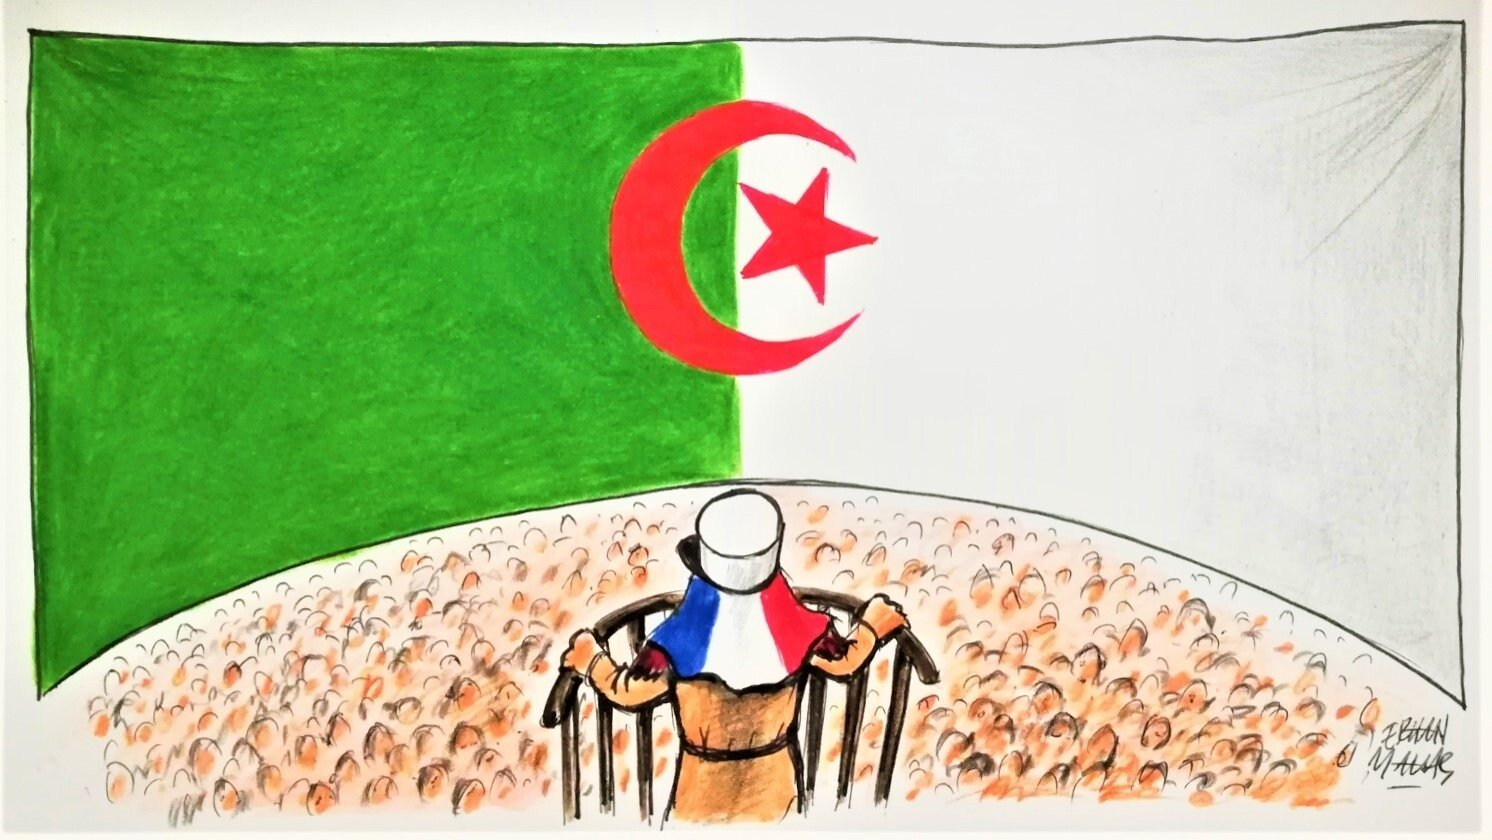 Illustration by Erhan Yalvaç shows a man with French-flagged hat confronting the Algerian flag, symbolizing the tension between France and Algeria.